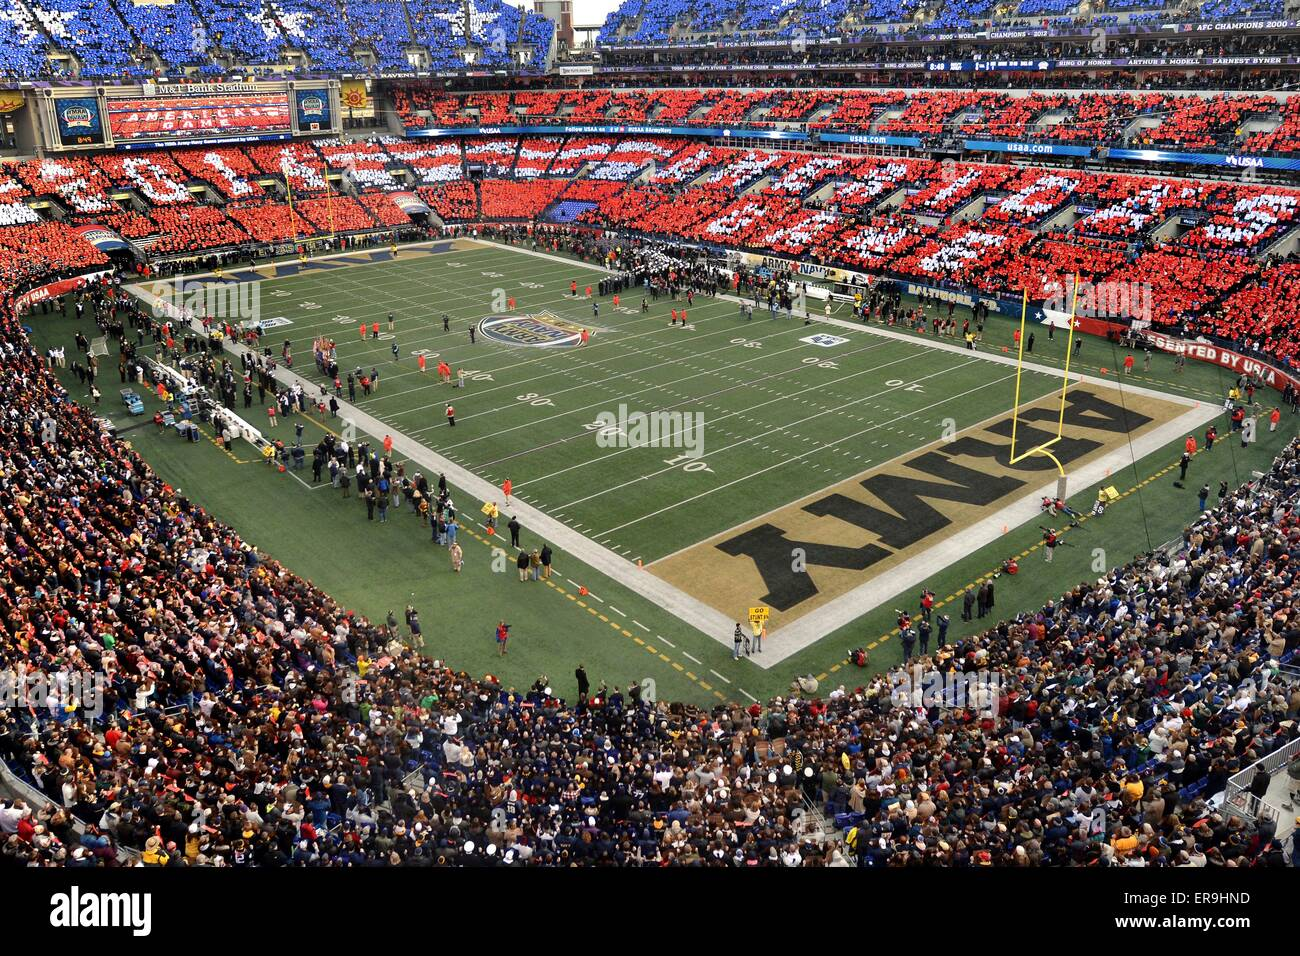 Spectators hold up colorful cards during the 115h Army vs Navy football game at M&T Stadium December 13, 2014 - Stock Image